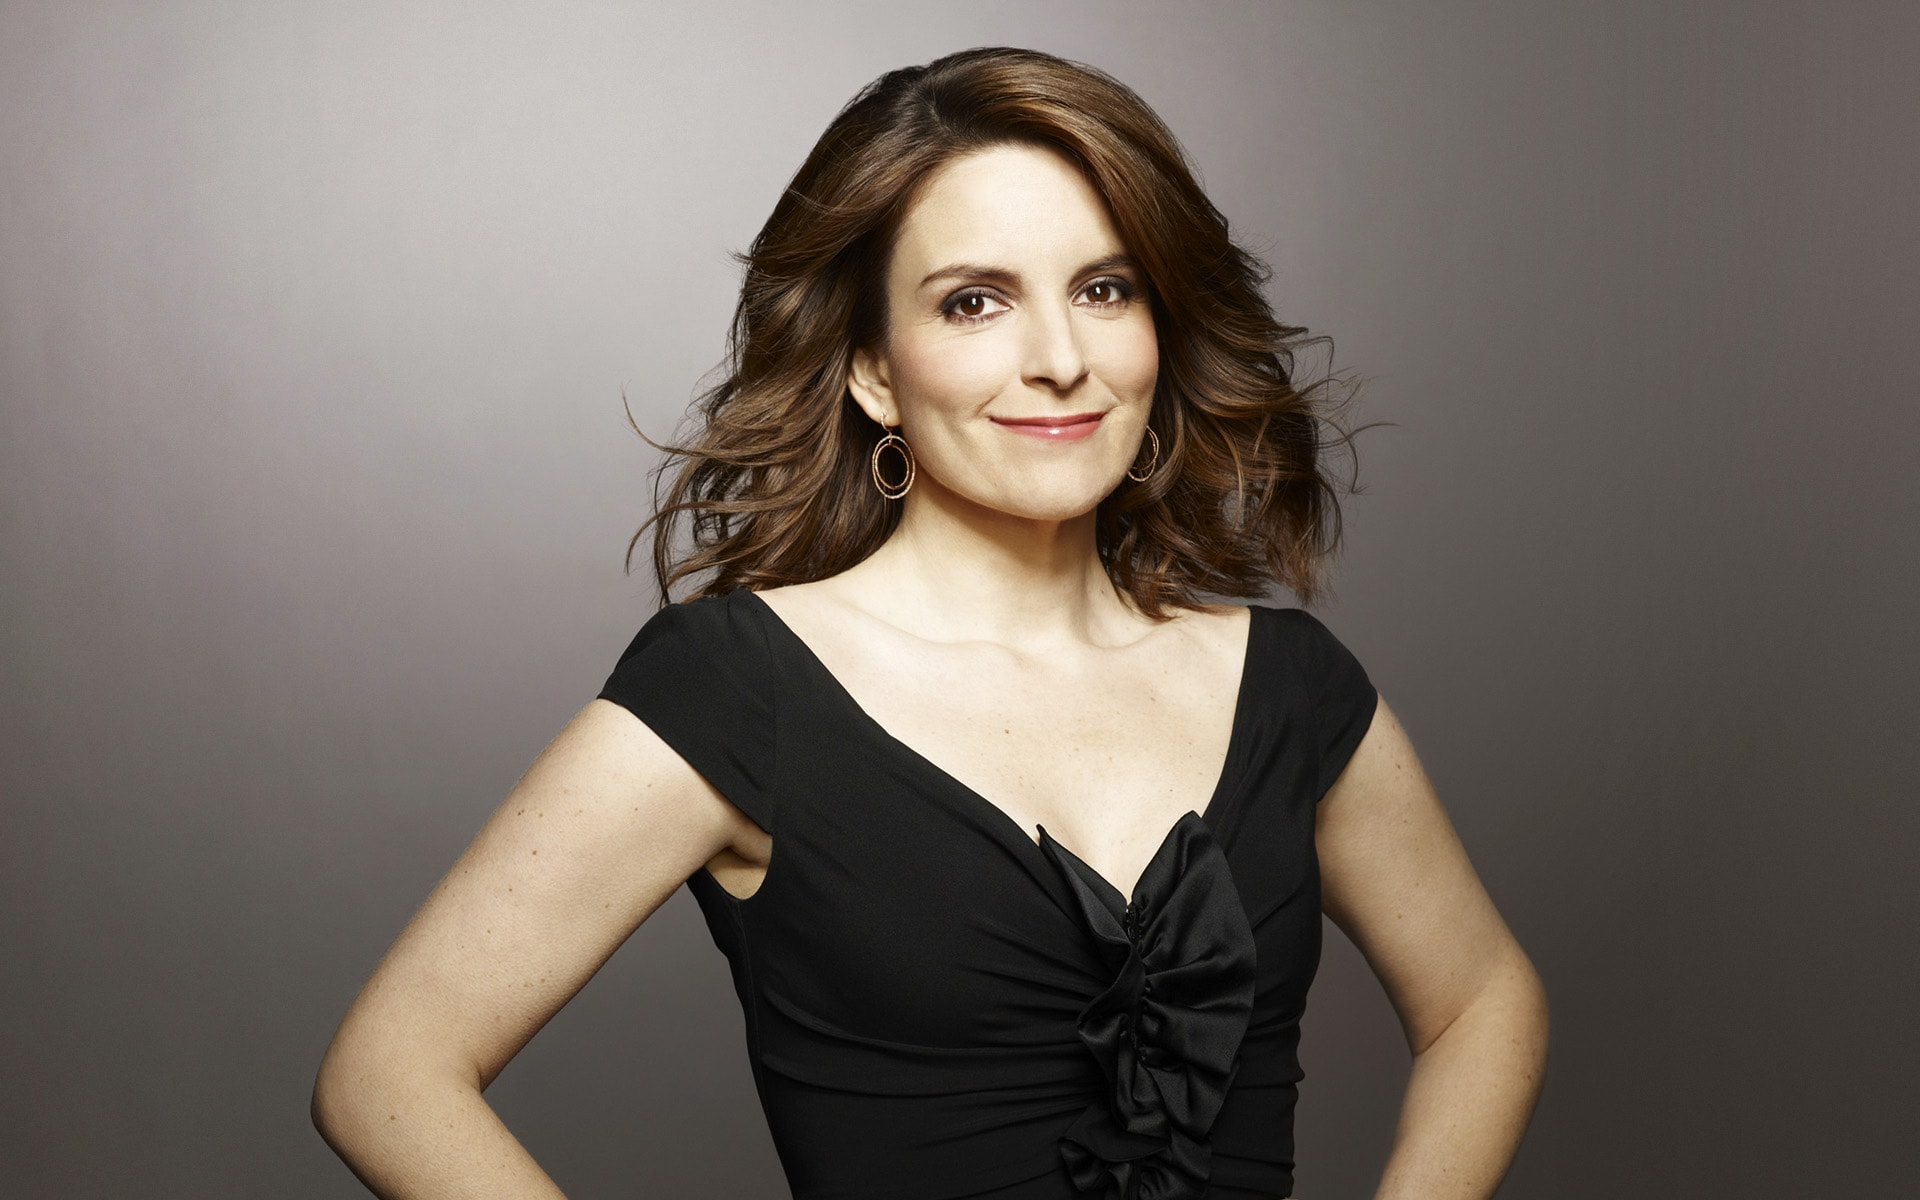 Tina Fey HQ wallpapers